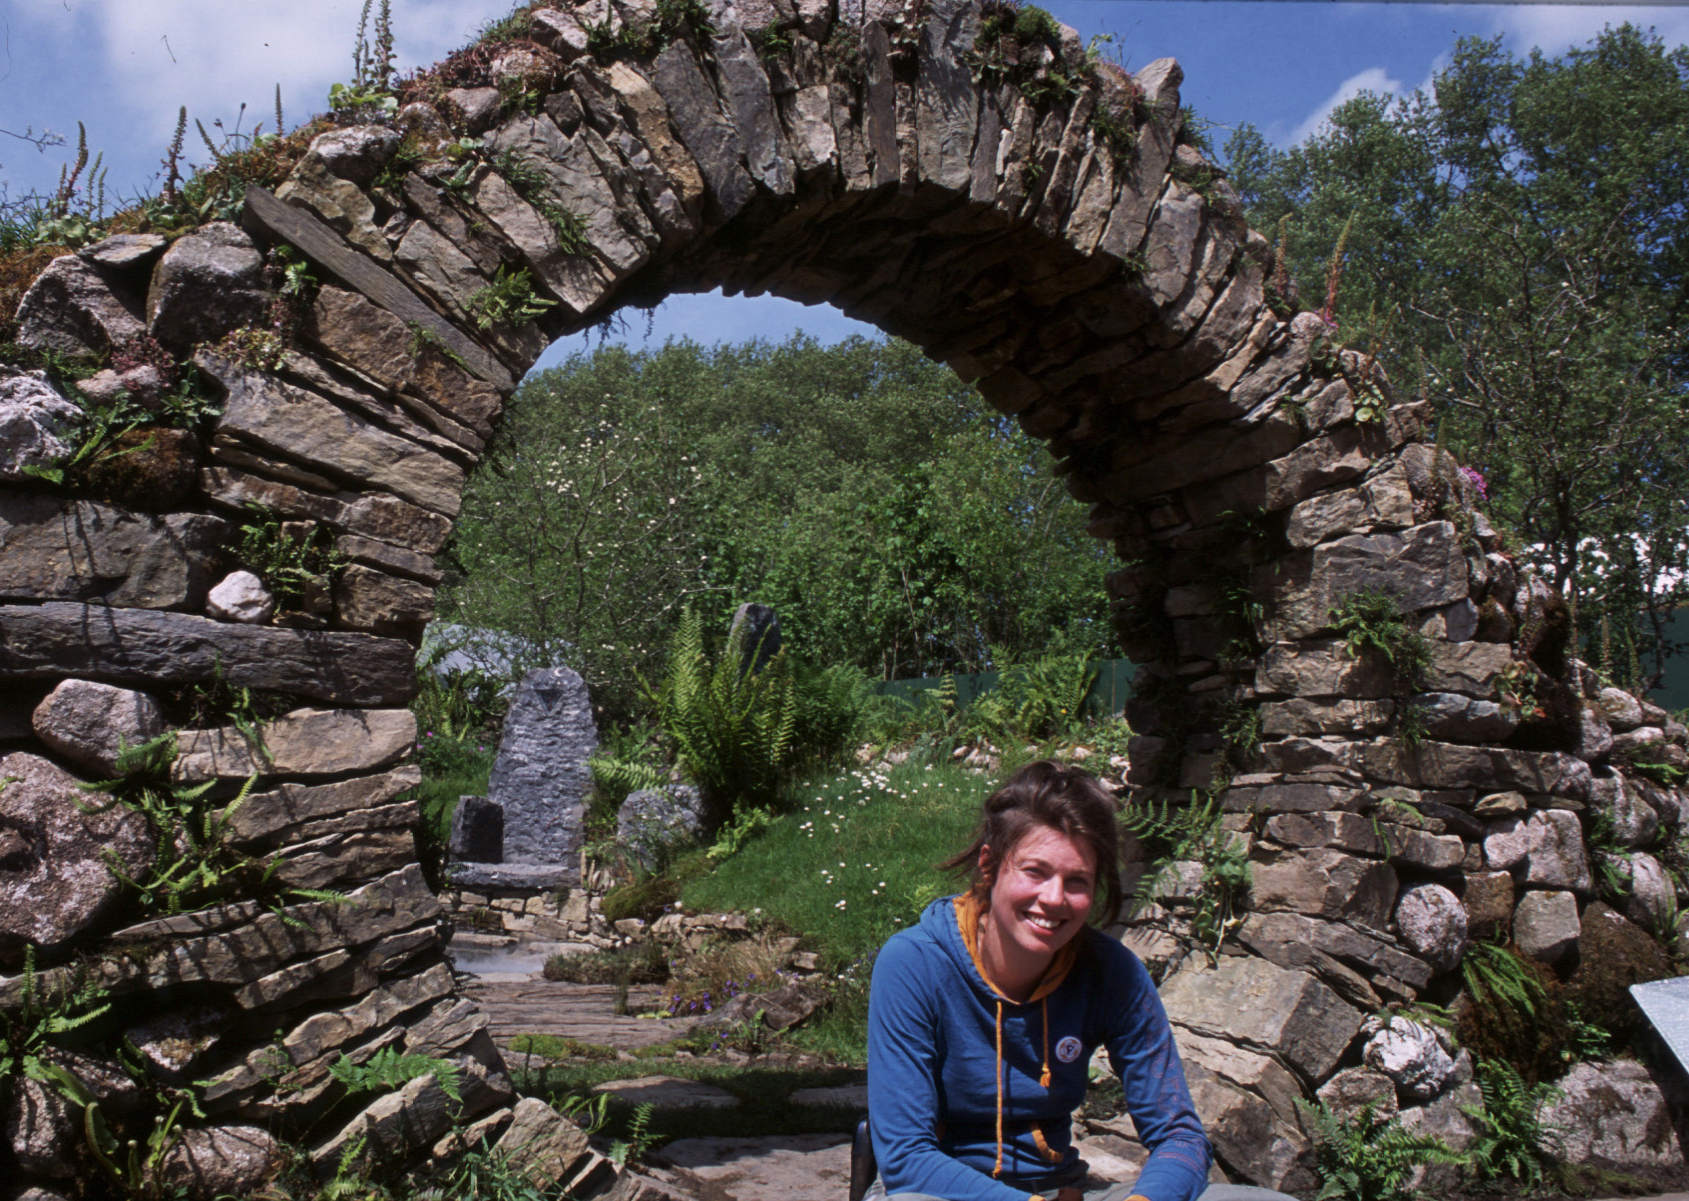 Mary Reynolds sits in front of the moon gate of her 'Celtic Sanctuary' garden, which won gold at the Chelsea Flower Show in 2002. | © 2014 CROW'S NEST PRODUCTIONS